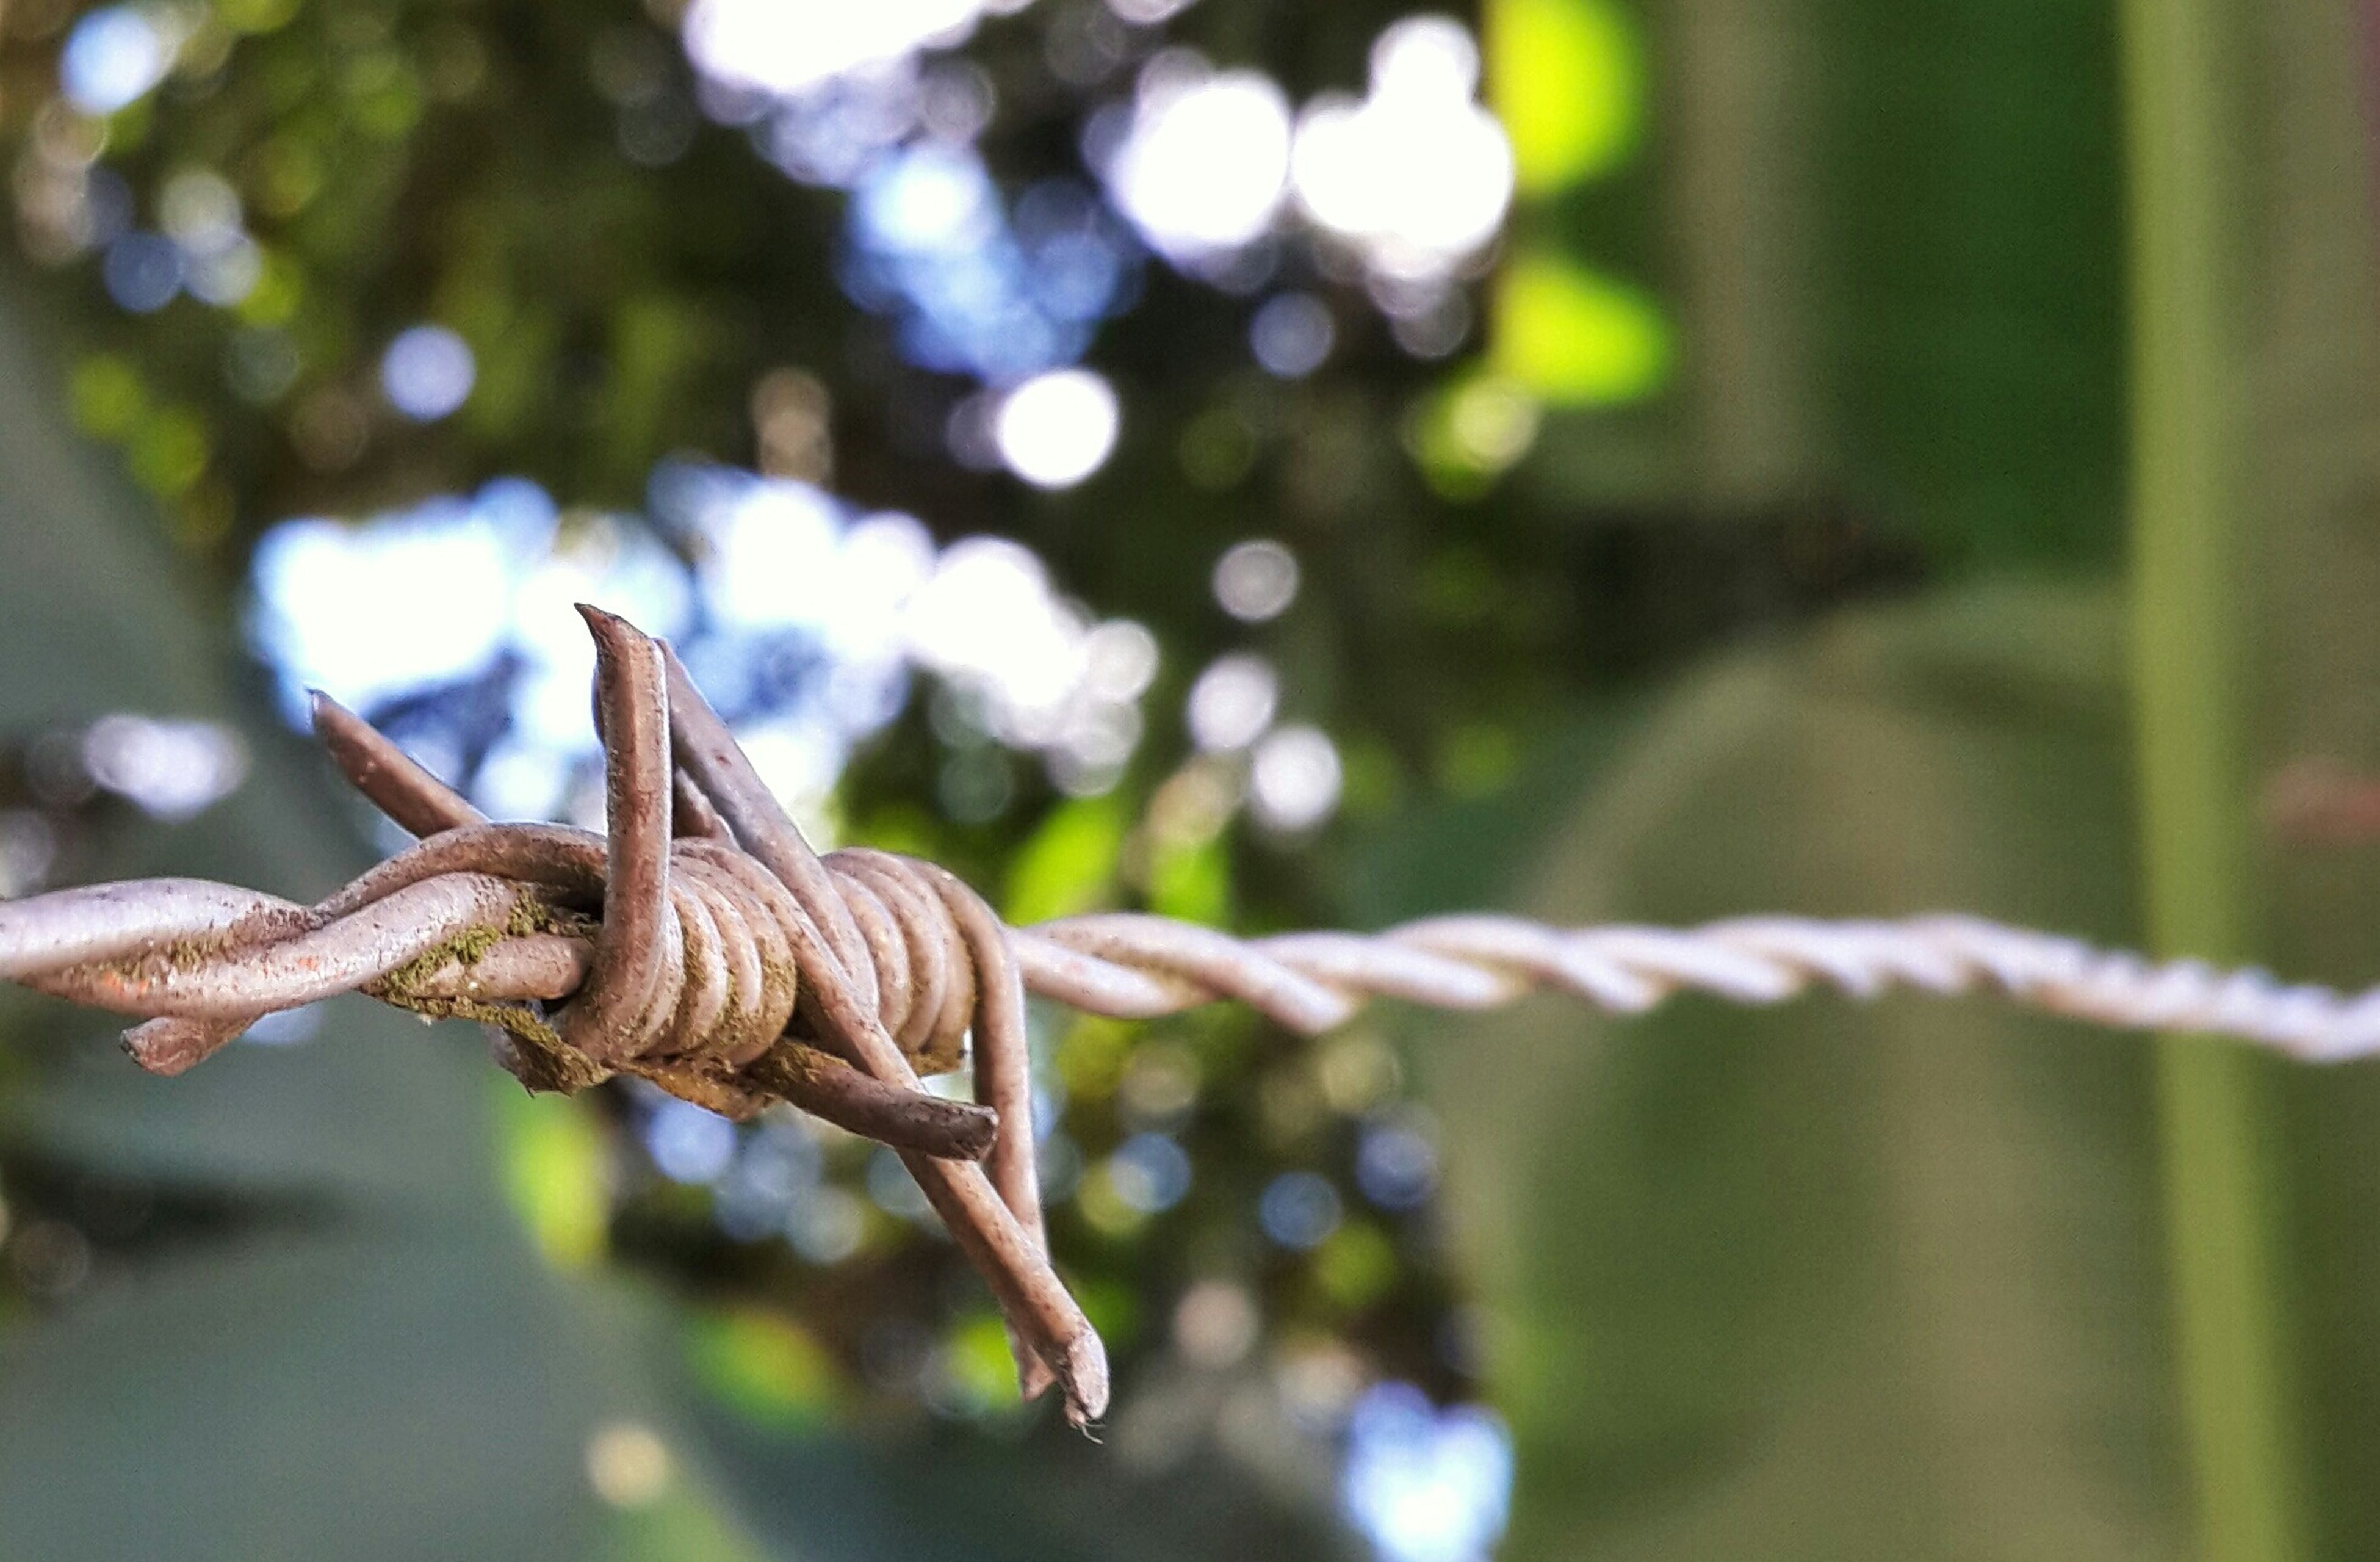 animal themes, focus on foreground, one animal, animals in the wild, wildlife, branch, perching, close-up, bird, tree, selective focus, nature, day, outdoors, full length, side view, no people, twig, fence, wood - material